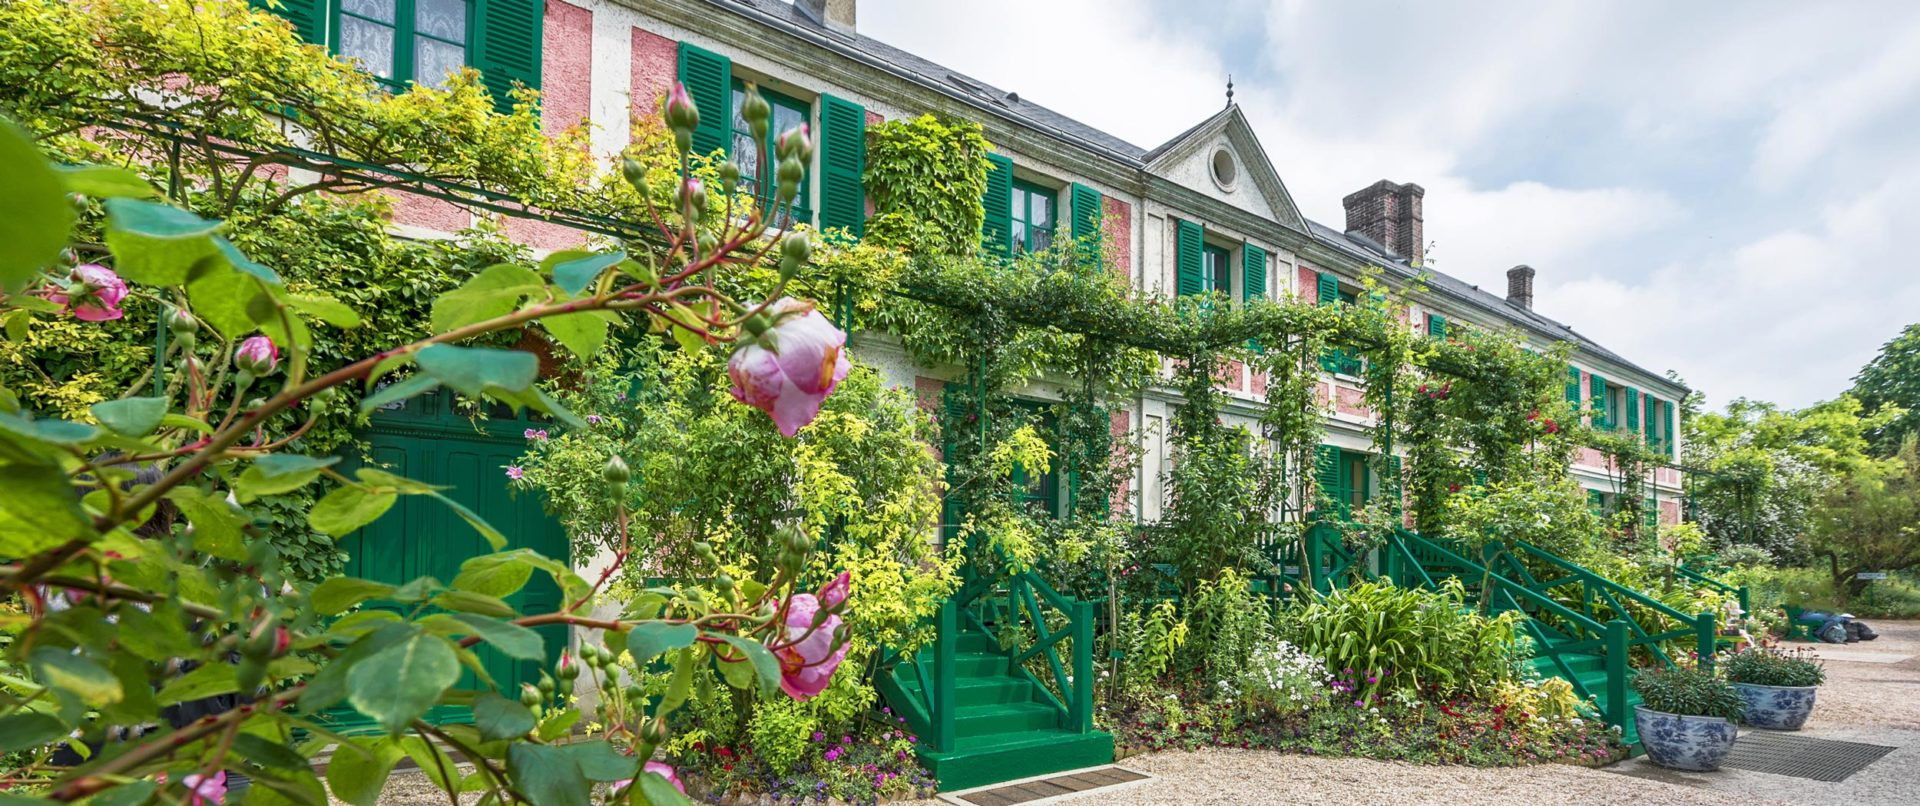 impressionism-Giverny-private-tour-for-families